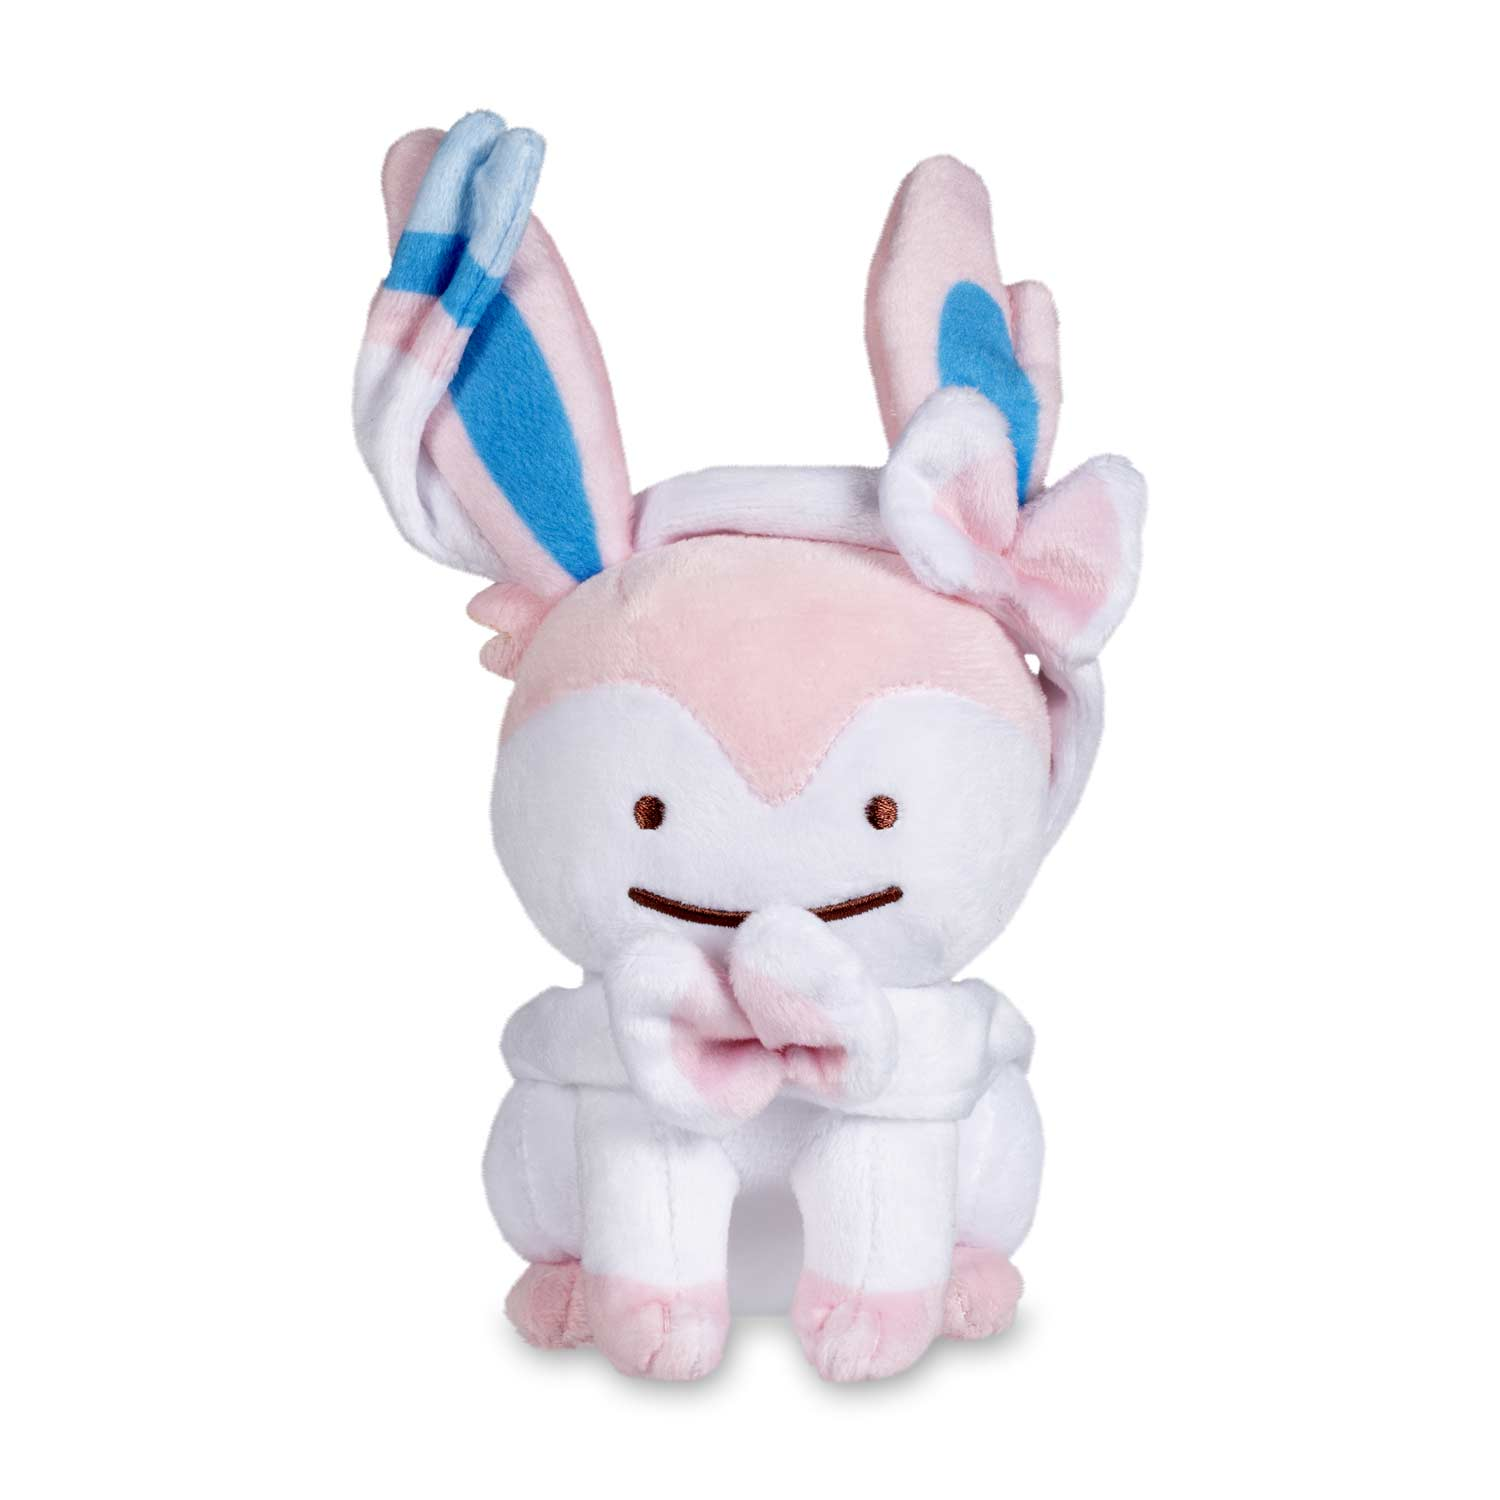 Ditto As Sylveon Plush - 8 In. | SKYFOX GAMES